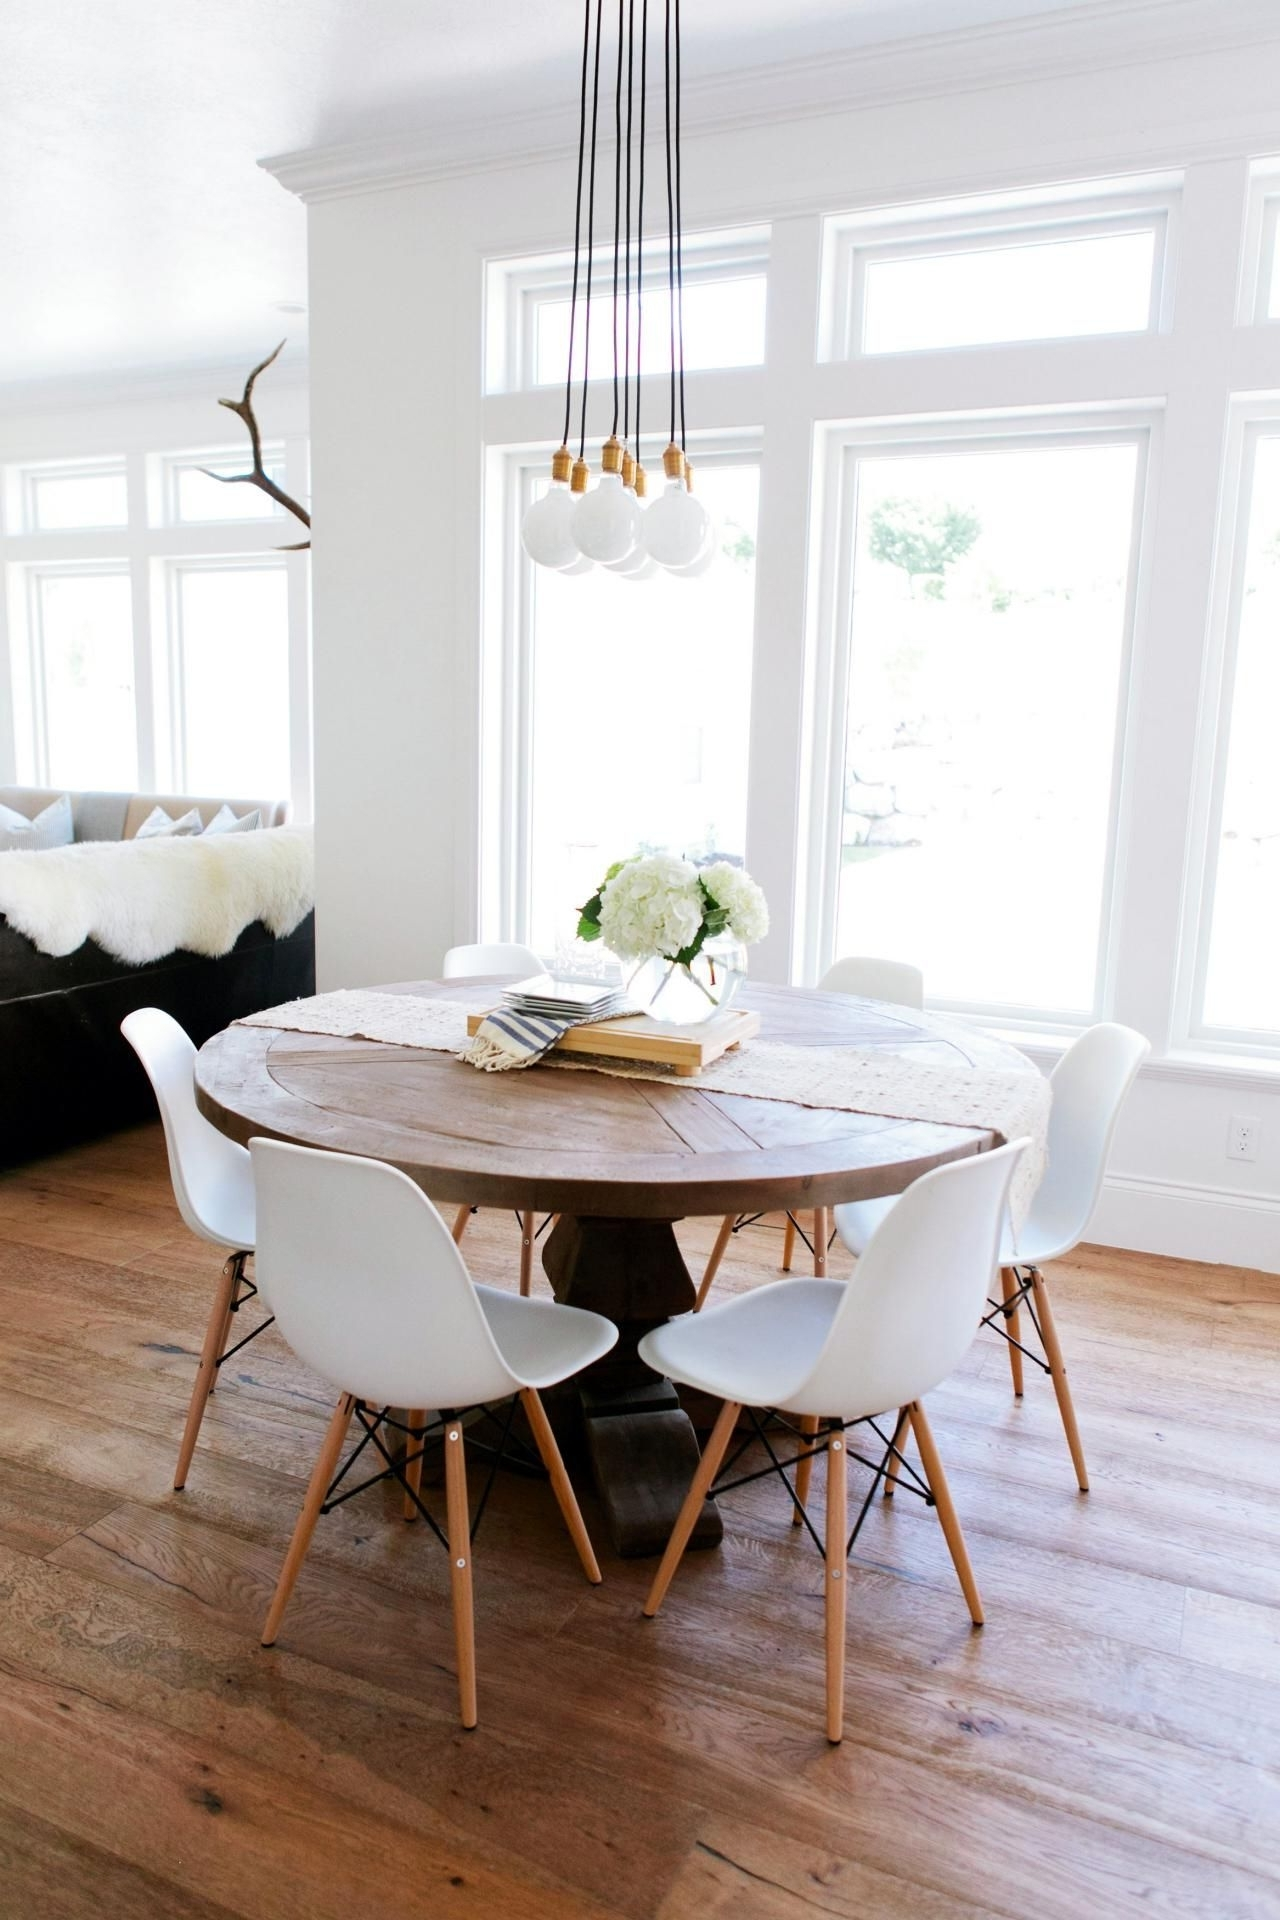 A Rustic Round Wood Table Surroundedwhite Eames Dining Chairs With Regard To Latest White Dining Tables And Chairs (View 20 of 25)